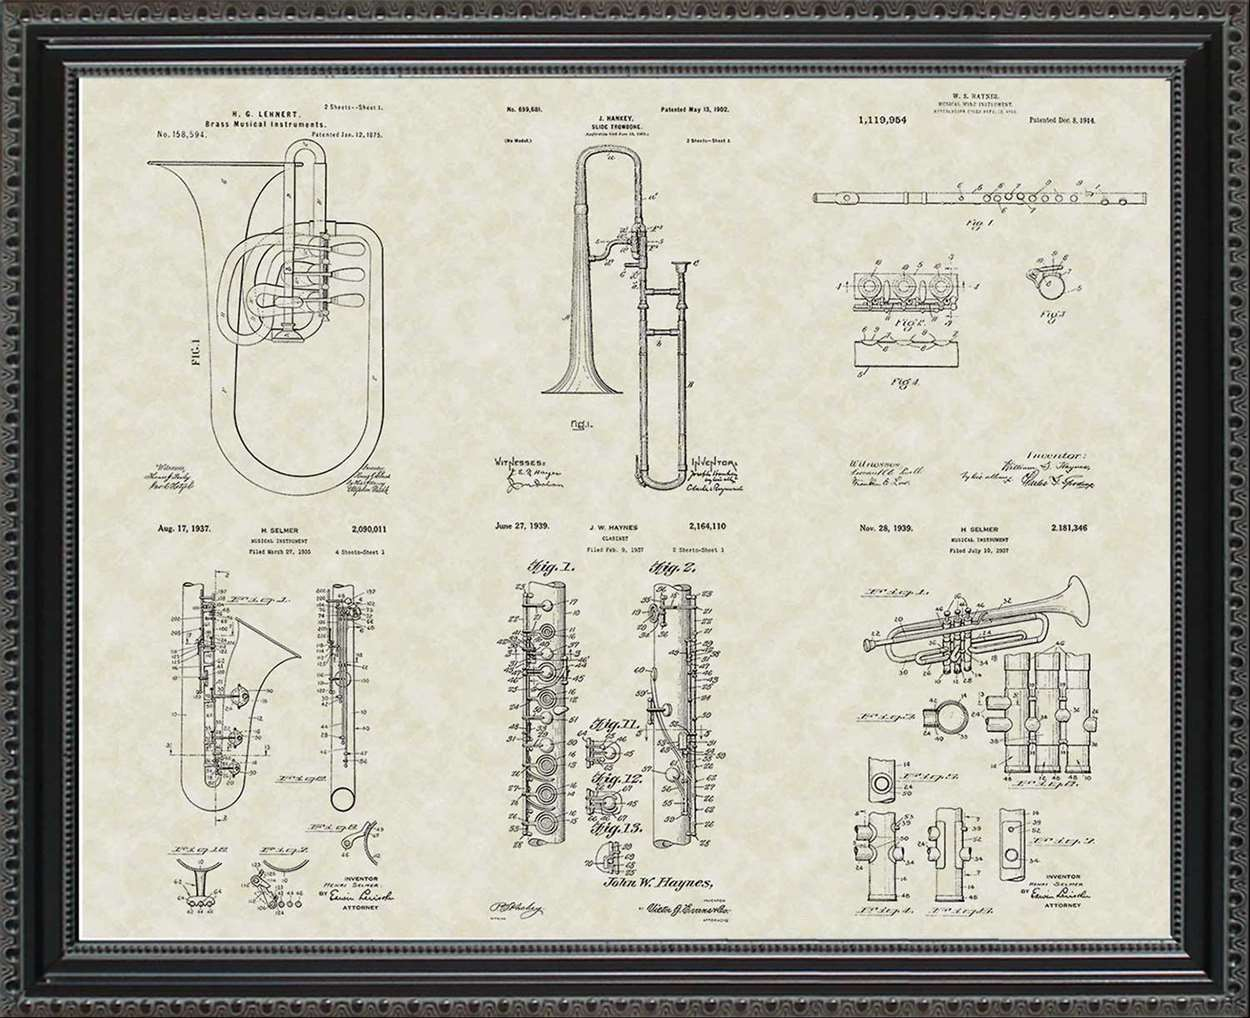 Band Instrument Patents, 20x24